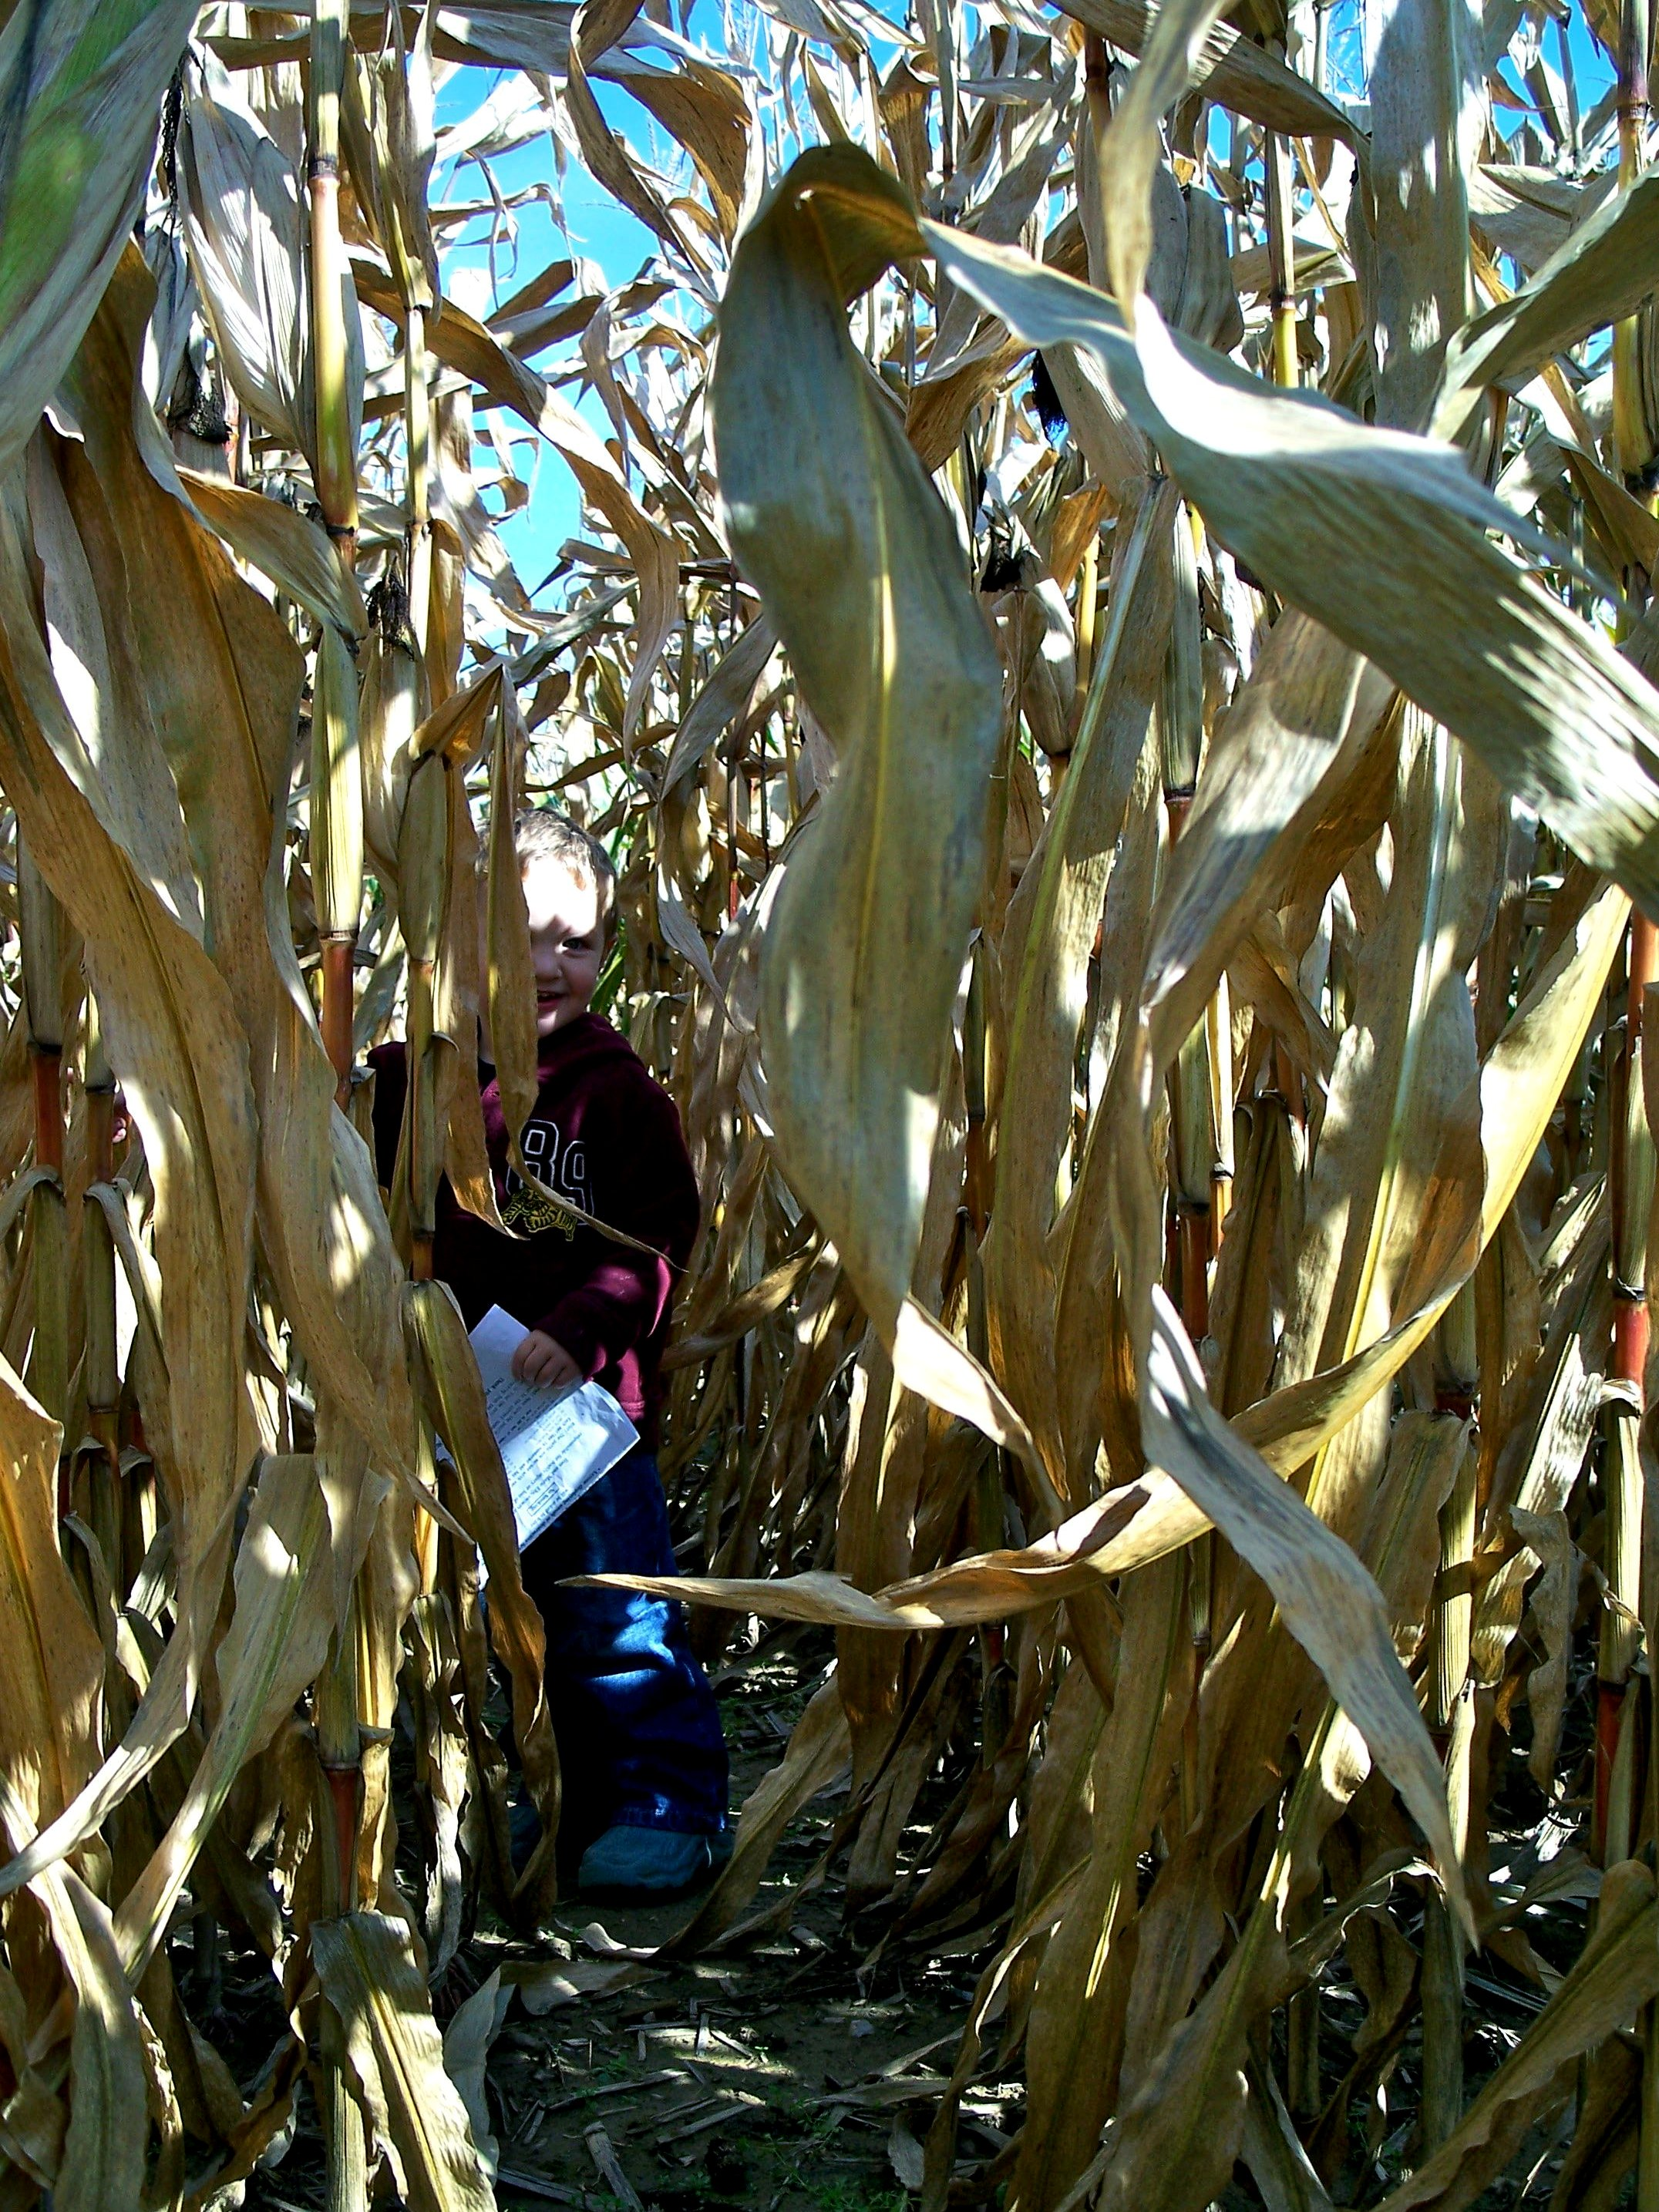 evan in corn